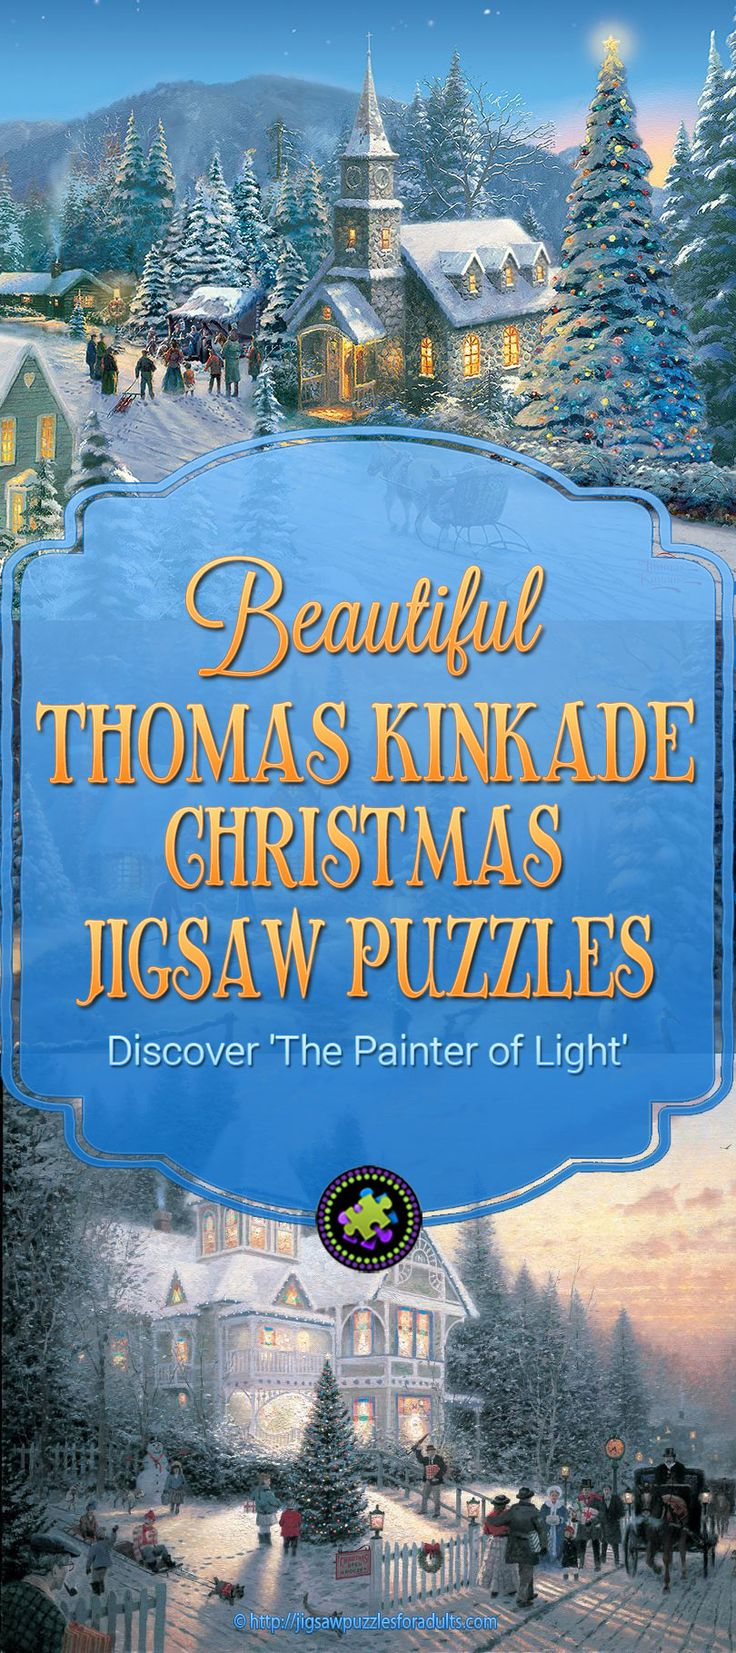 Are You looking for Thomas Kinkade Christmas Puzzles? If you are a fan of Thomas Kinkade's artwork you will love this selection of Thomas Kinkade Christmas Jigsaw Puzzles.Thomas Kinkade a devout Christian believed that Christmas is a season of happy memories to be shared and spent with family and friends and Holiday Traditions.